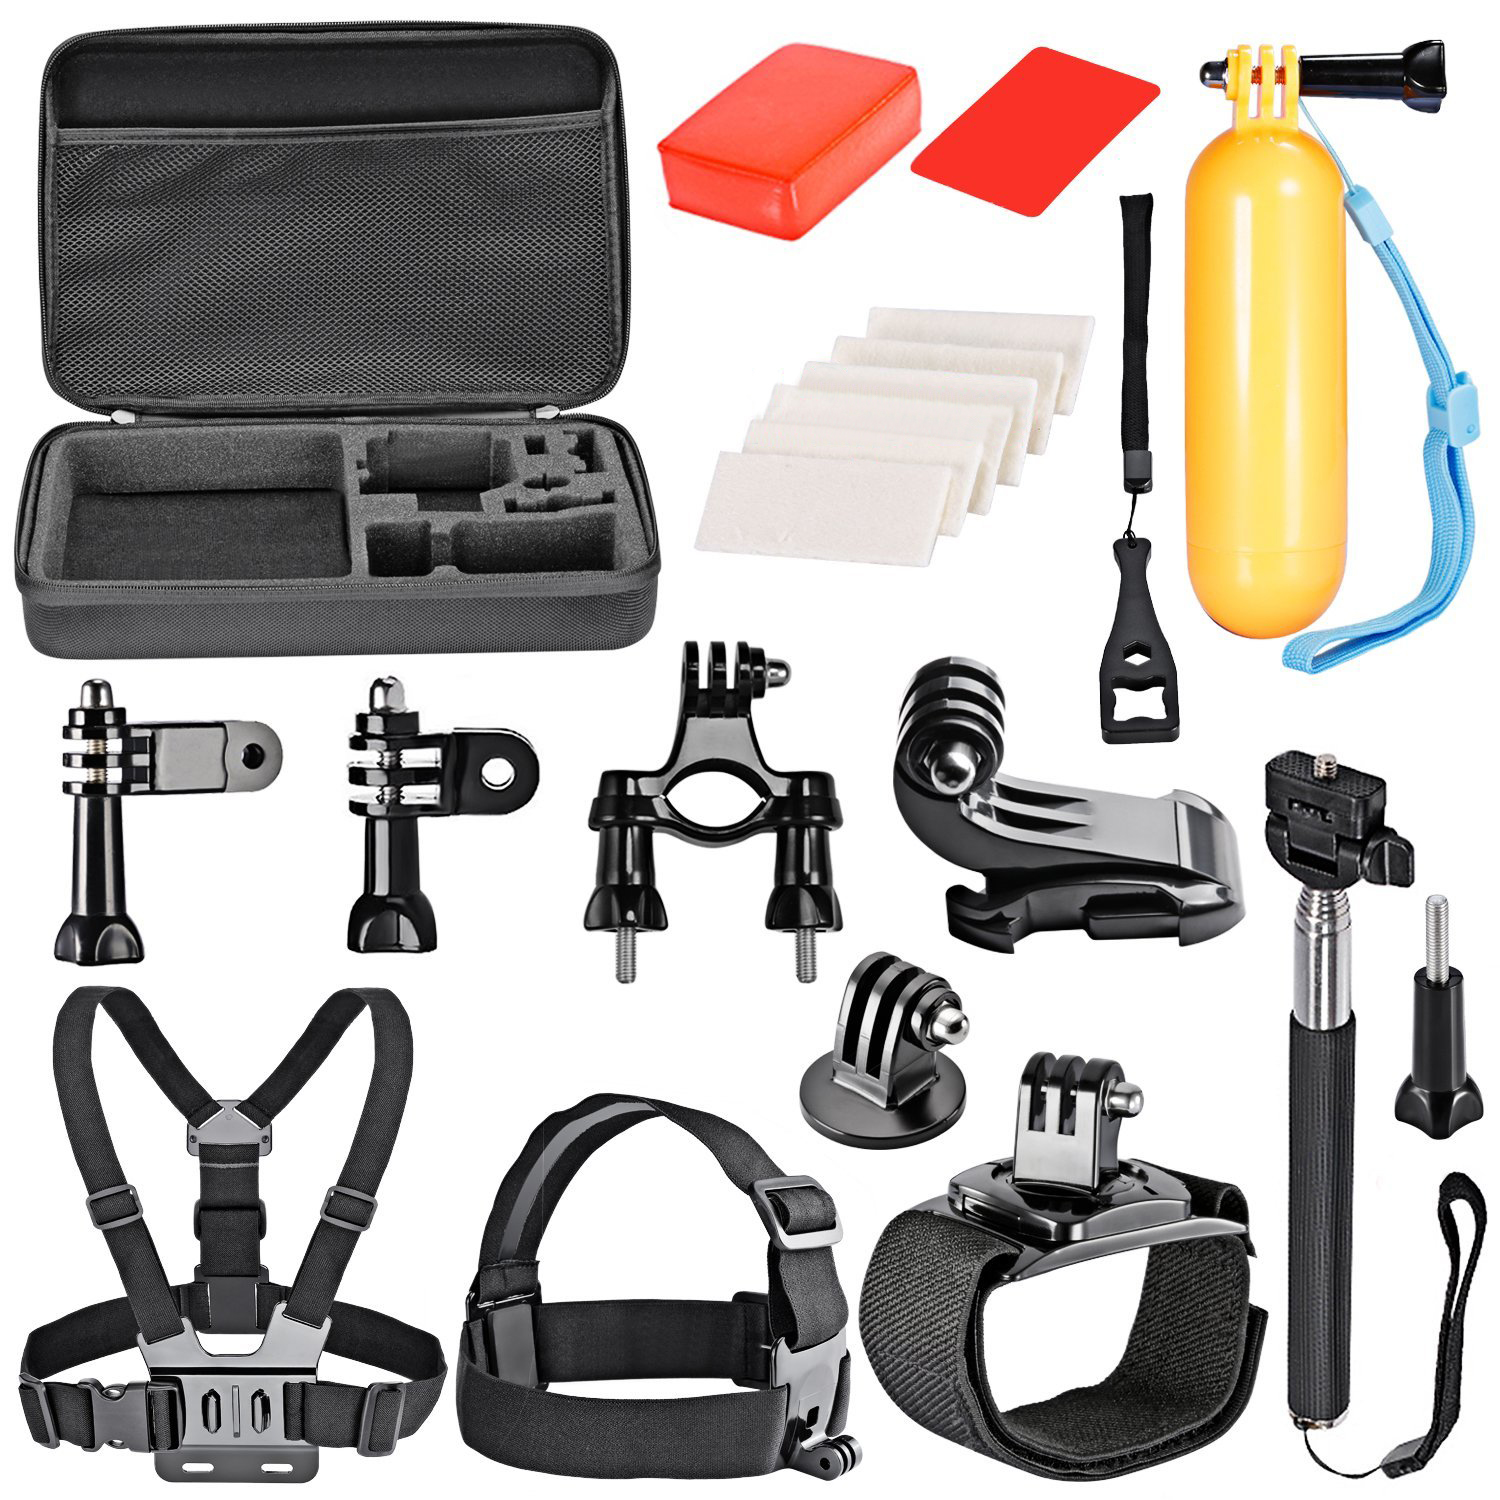 Galleria fotografica Brand New 18-In-1 Sport Accessory Kit for GoPro Hero4 Session Hero1 2 3 3+ 4 SJ4000 5000 6000 7000 Yi in Outdoor Sports